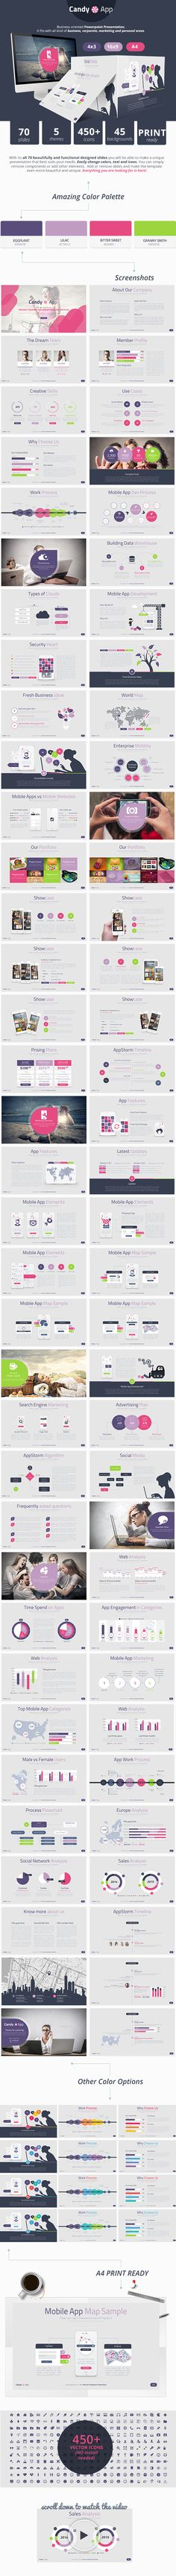 CandyApp Powerpoint Presentation Template #design Download: http://graphicriver.net/item/candyapp-powerpoint-presentation/12068022?ref=ksioks